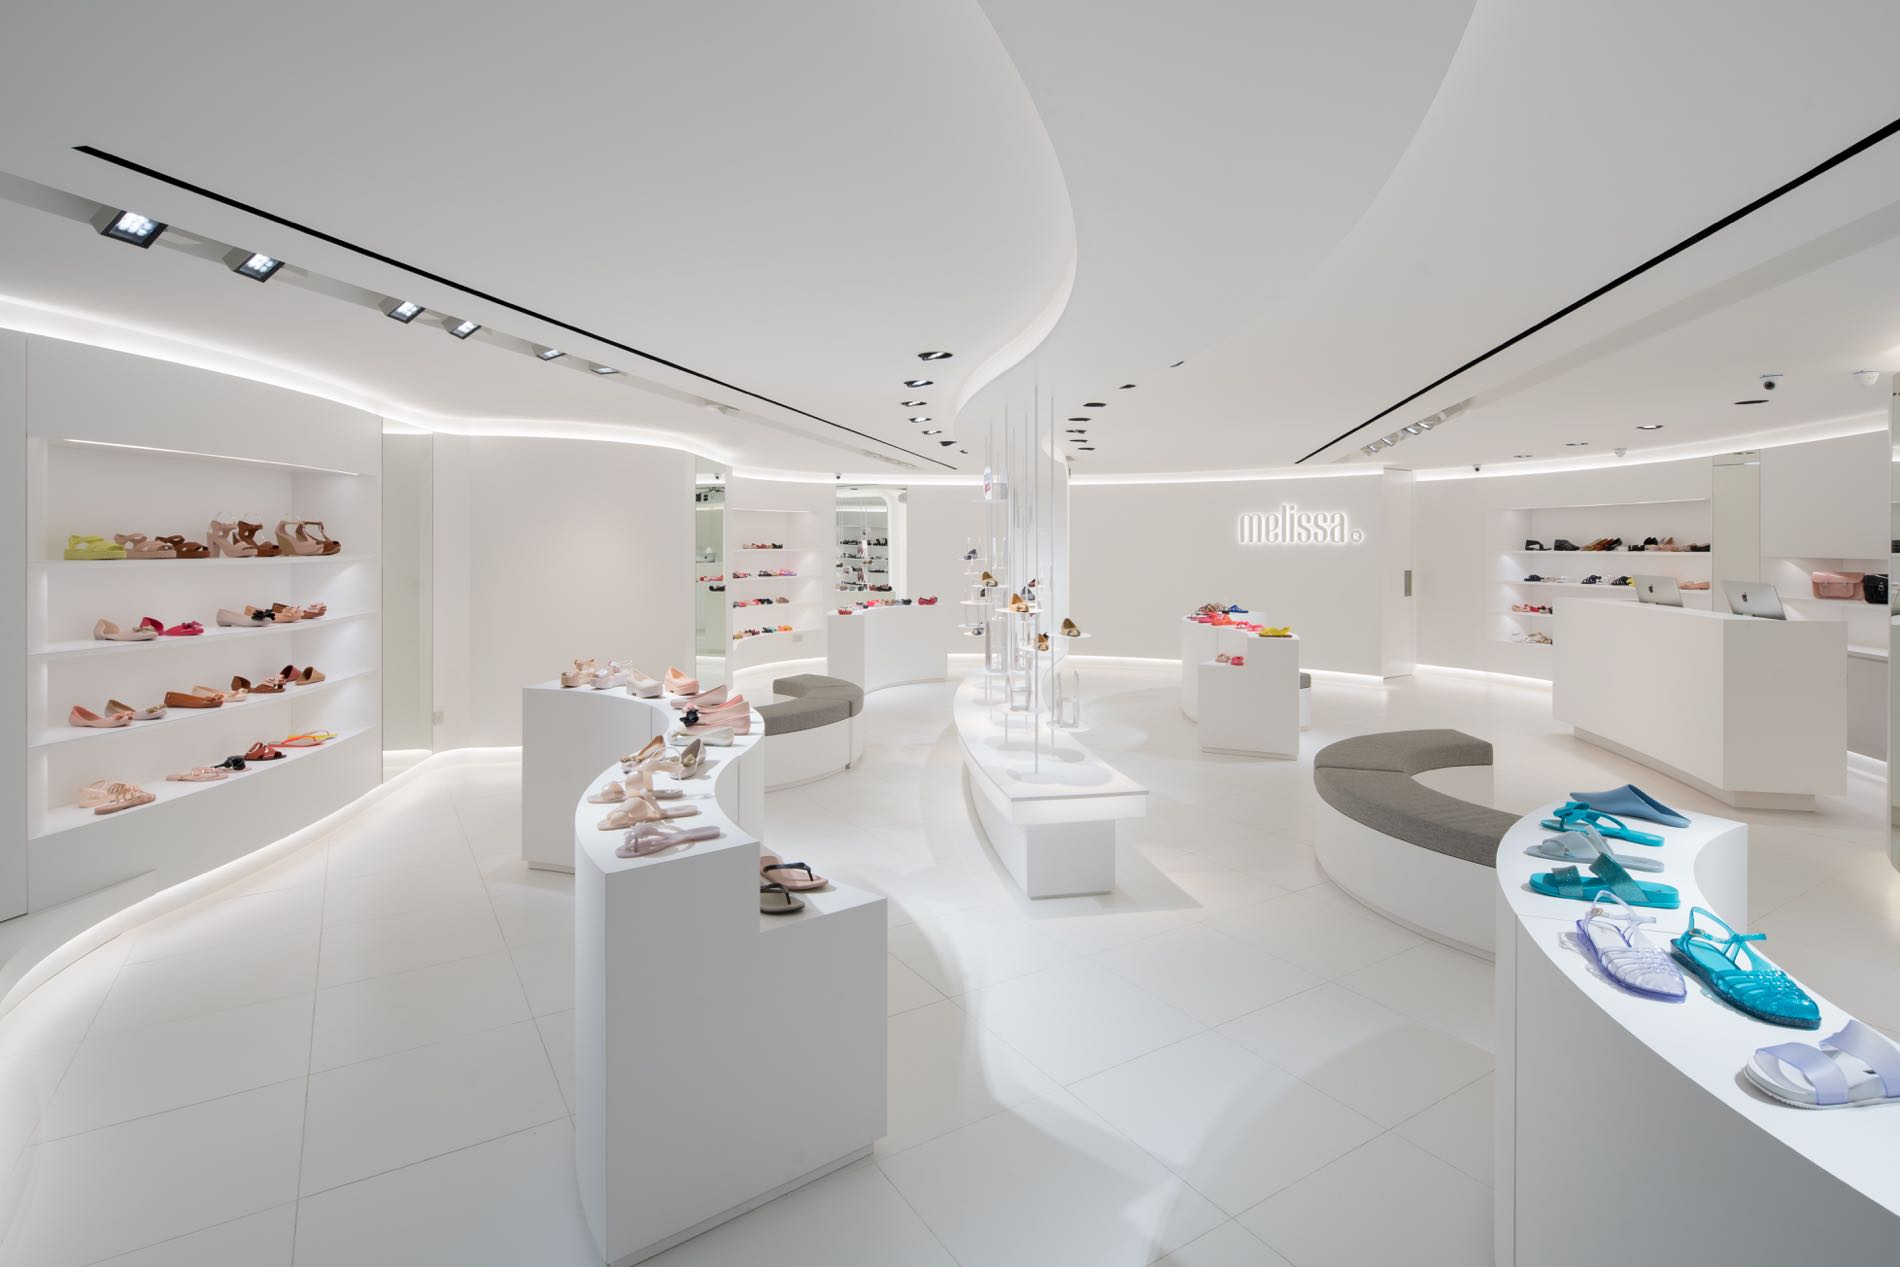 a076d850a62591 The new Melissa MDREAMS flagship store design has also been adapted and  rolled out in Melissa s first personalised counter at Tangs Vivo City